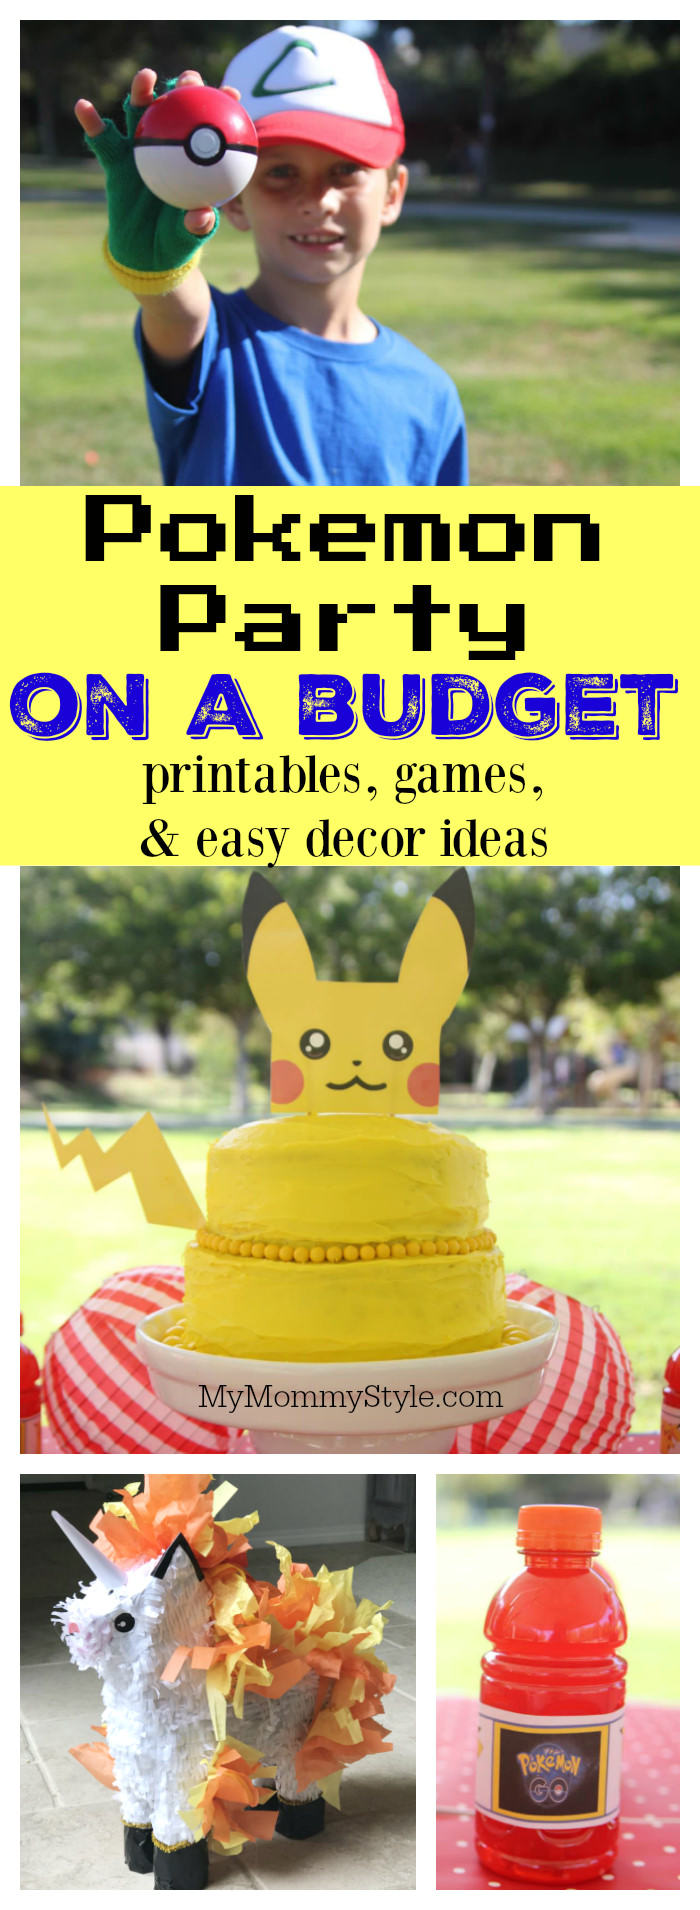 Having a Pokemon Party is a little boy's or girl's dream come true as they turn into Pokemon master trainers by completing Pokemon challenges. via @mymommystyle